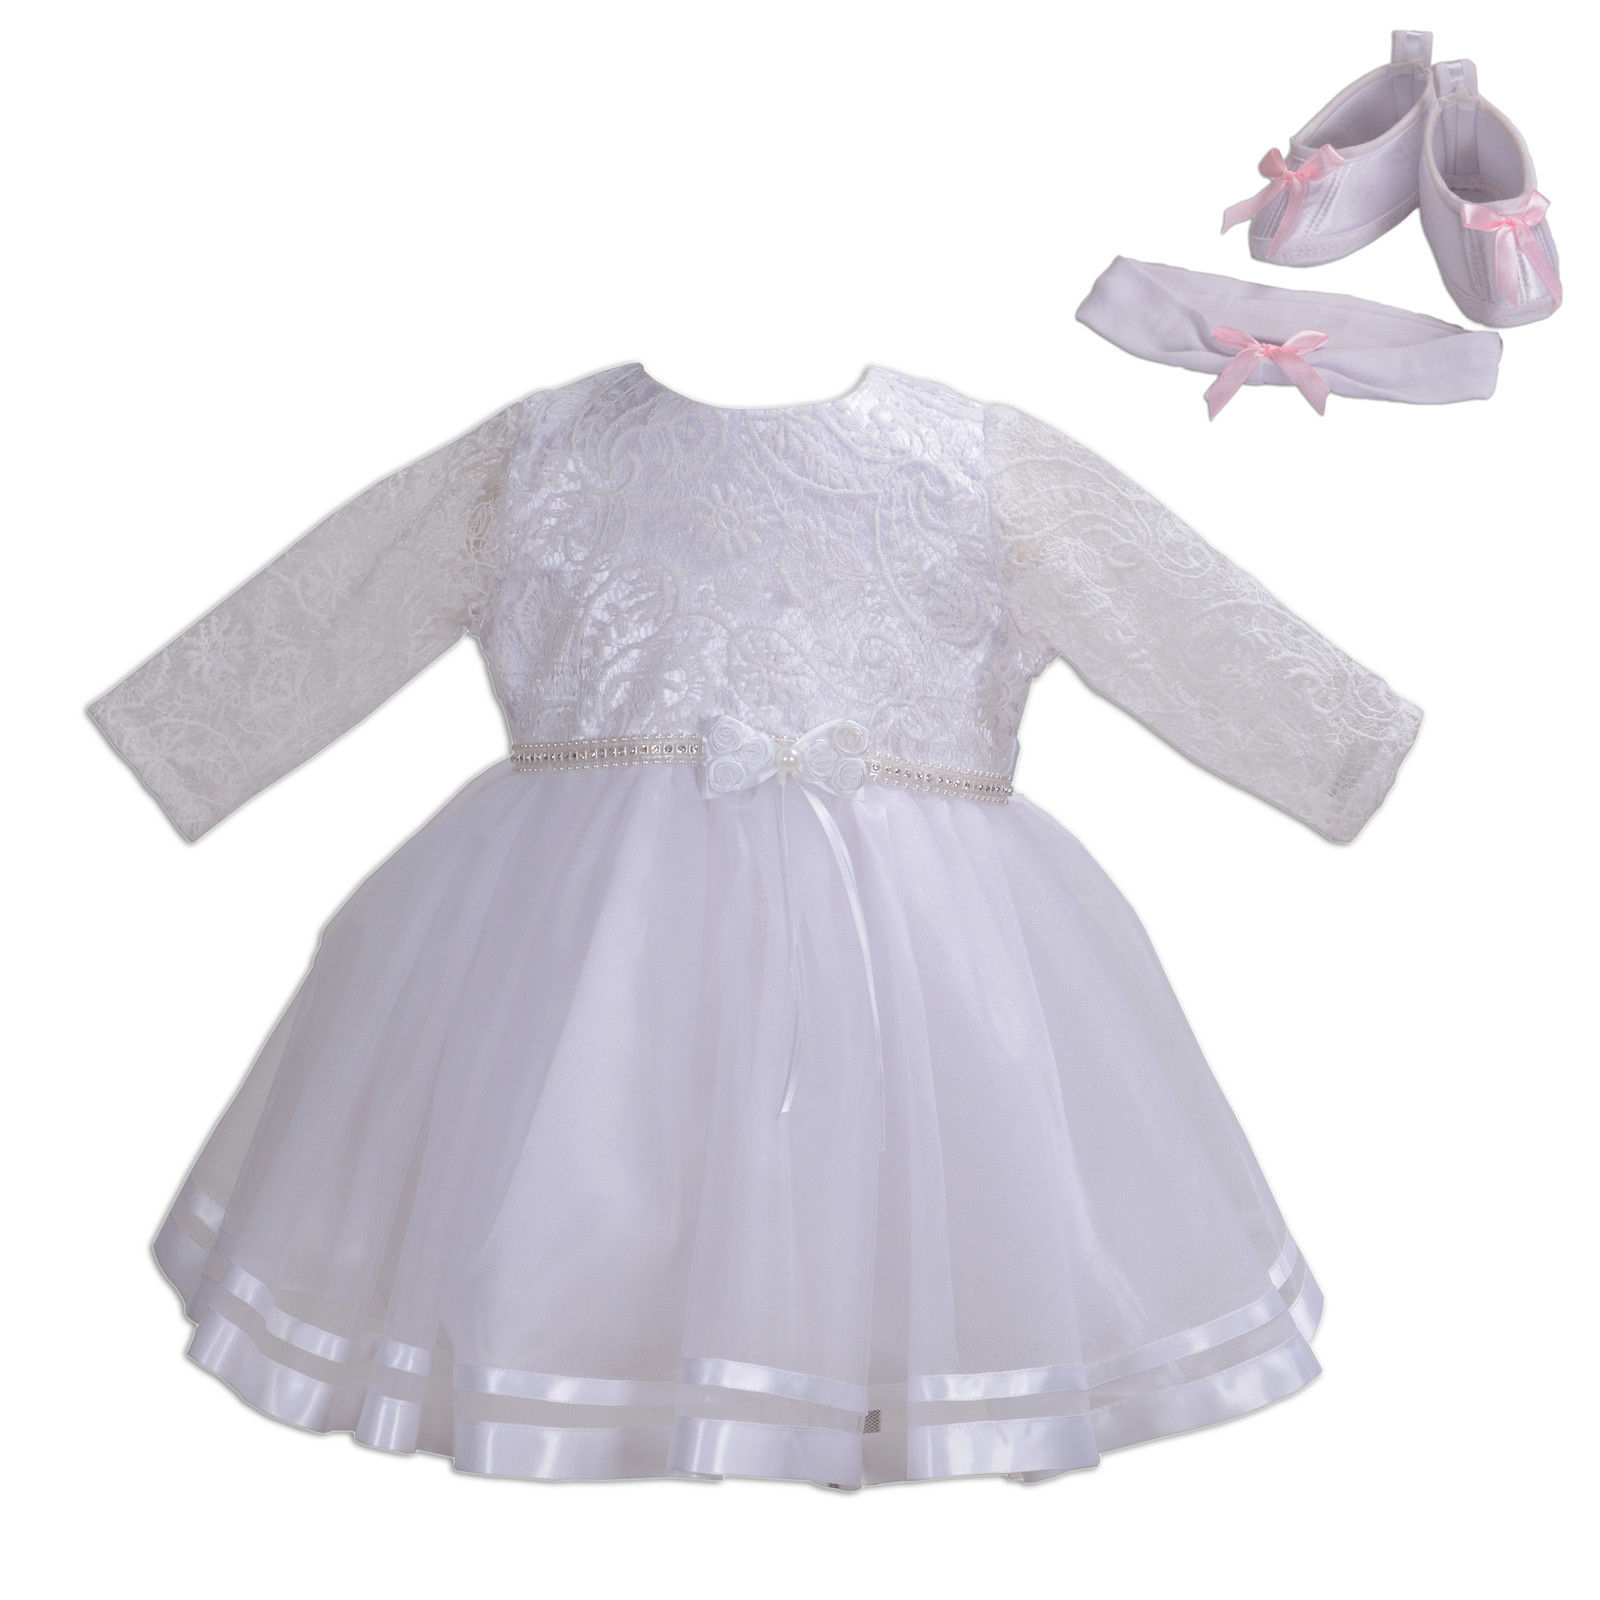 553848eca1fbc S l1600. S l1600. Previous. New Girls Long Sleeves White Christening Party  Dress 0 3 6 12 18 ...